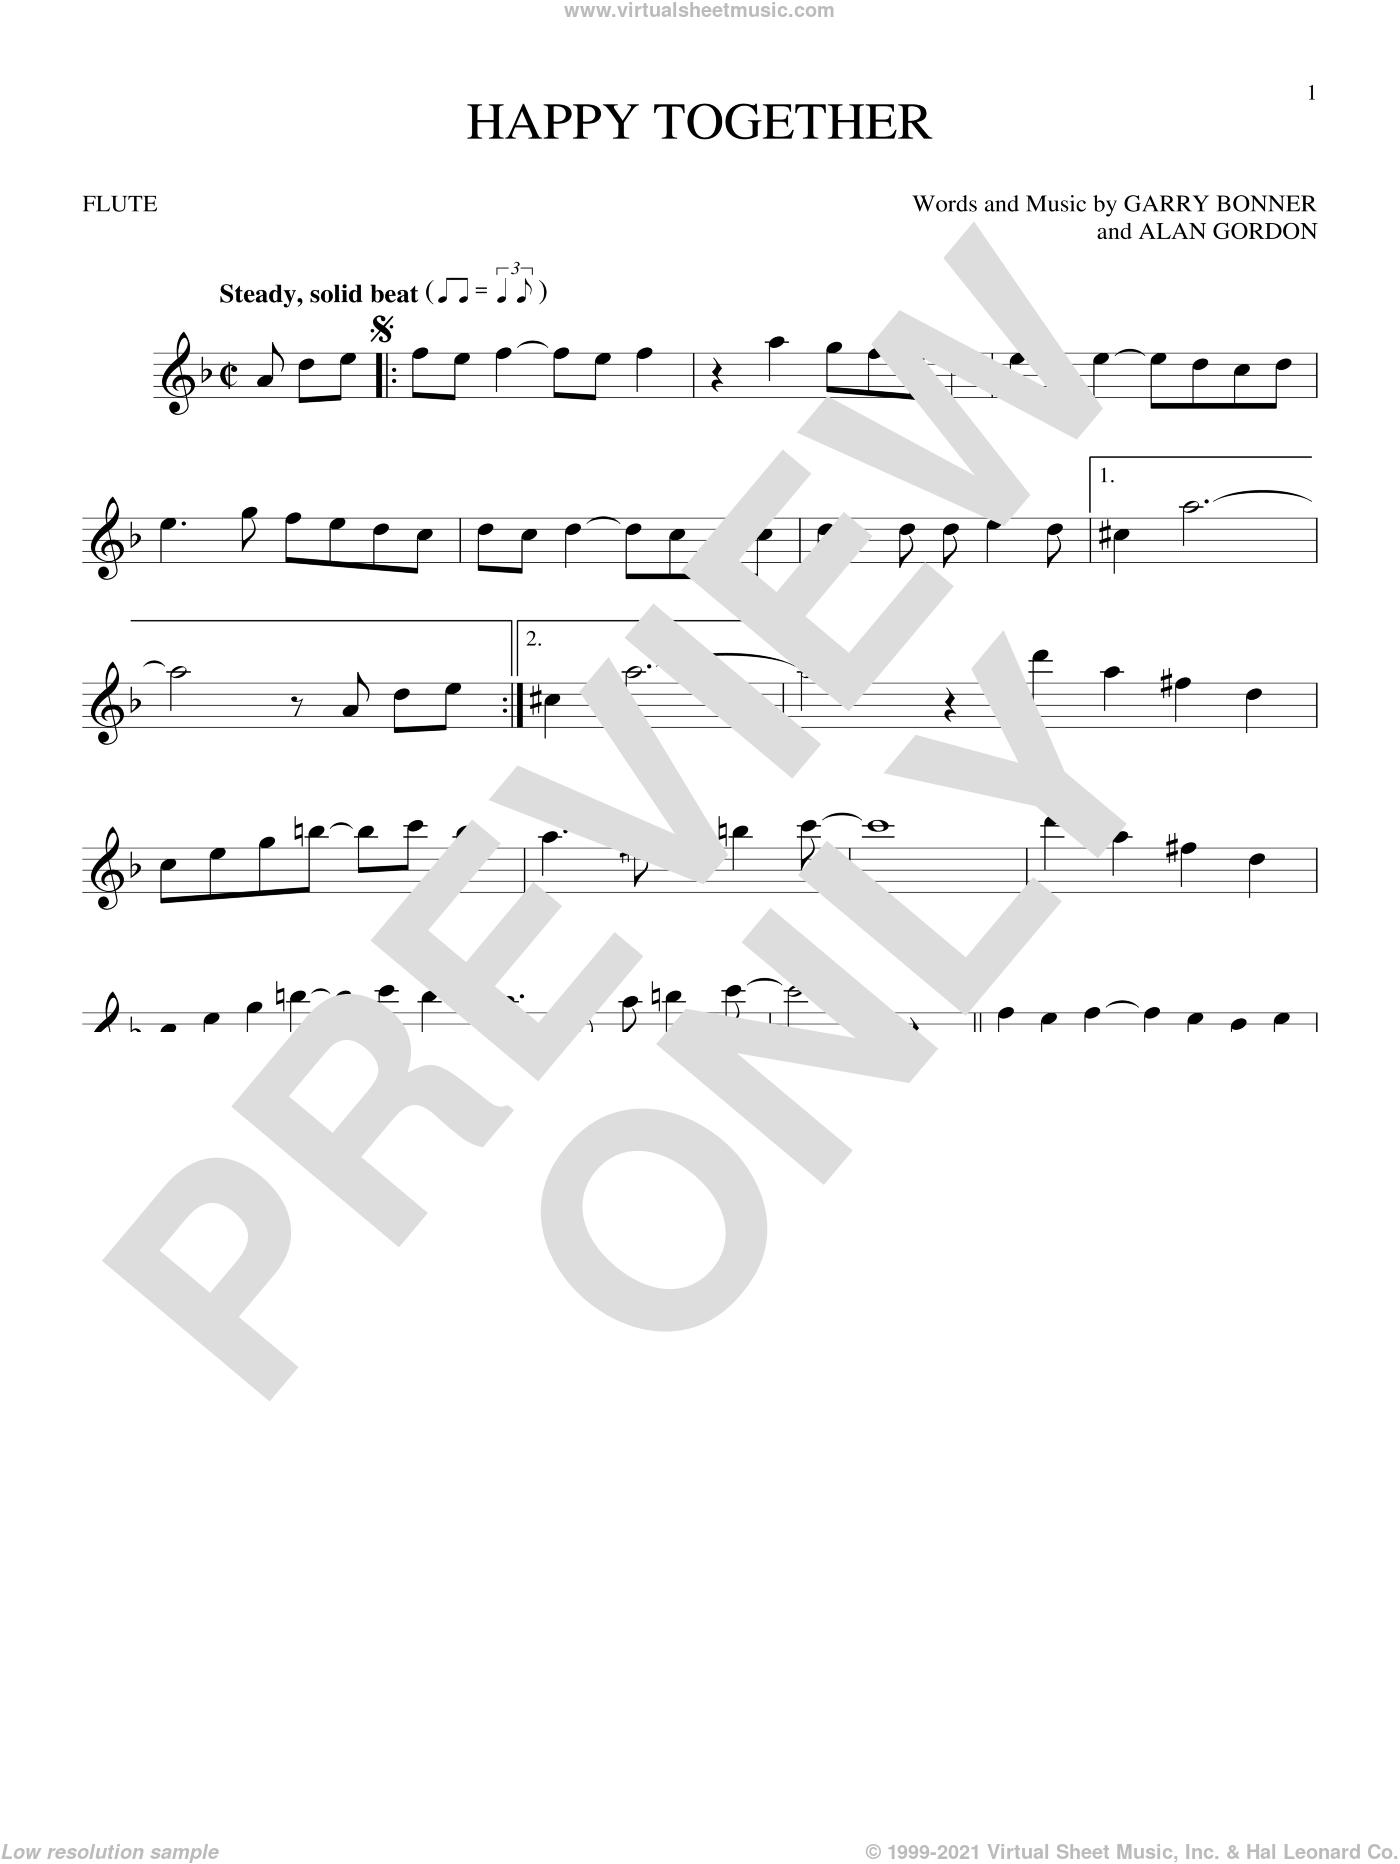 Happy Together sheet music for flute solo by The Turtles, Alan Gordon and Garry Bonner, intermediate